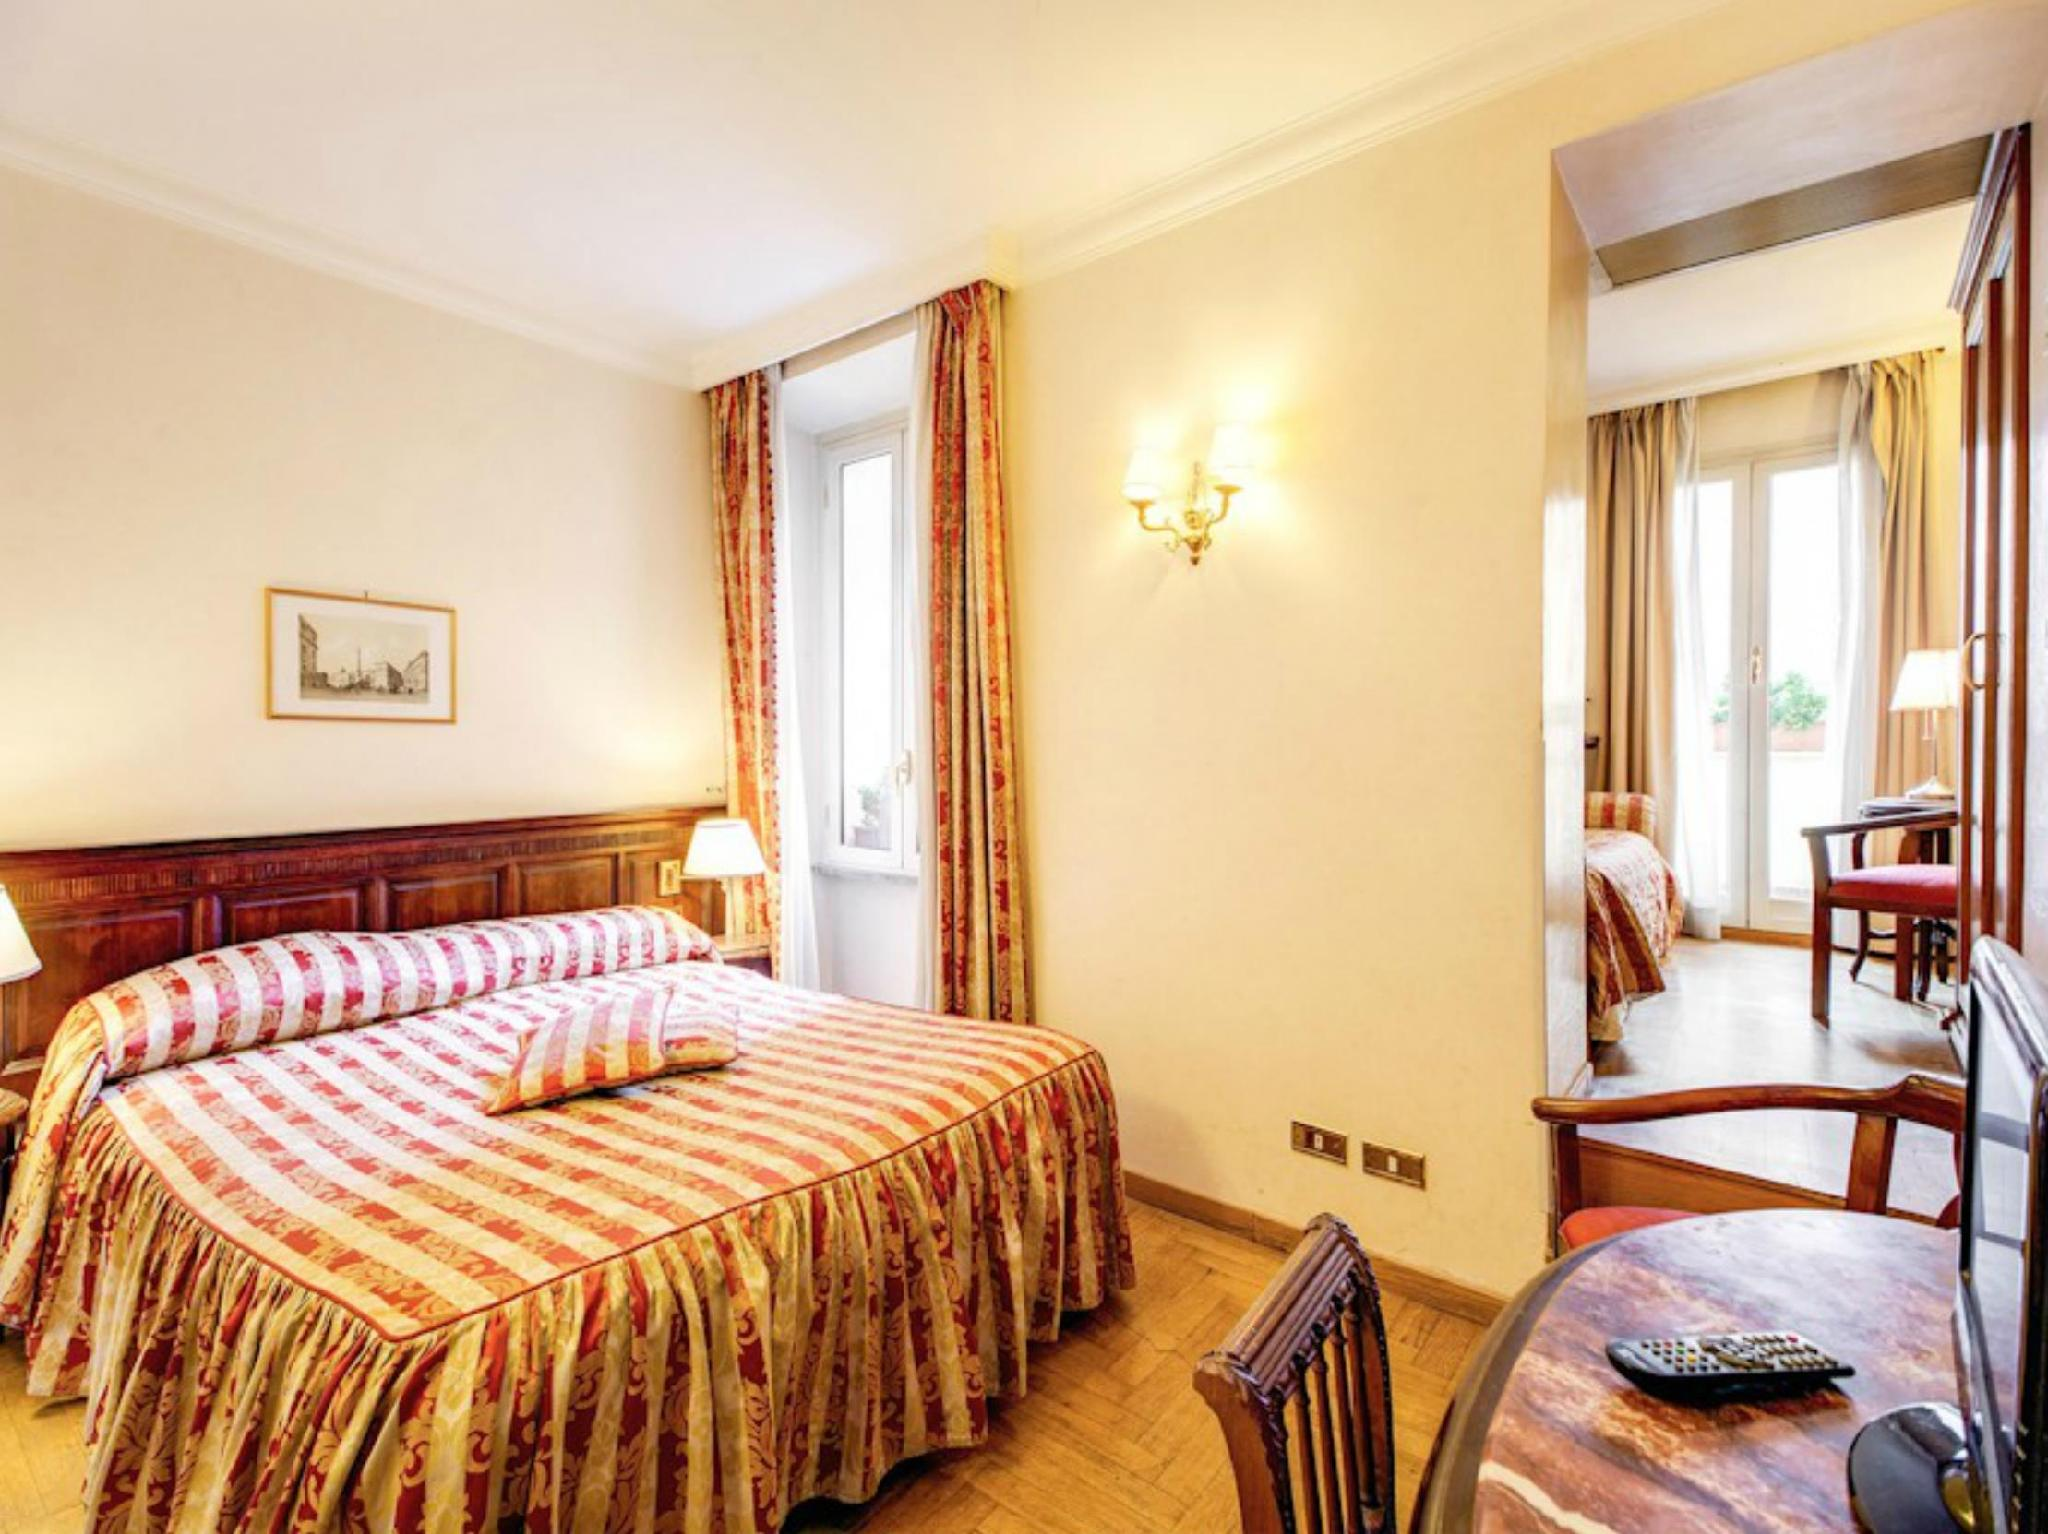 Hotel Cinquantatre Rome - Double Room with Terrace